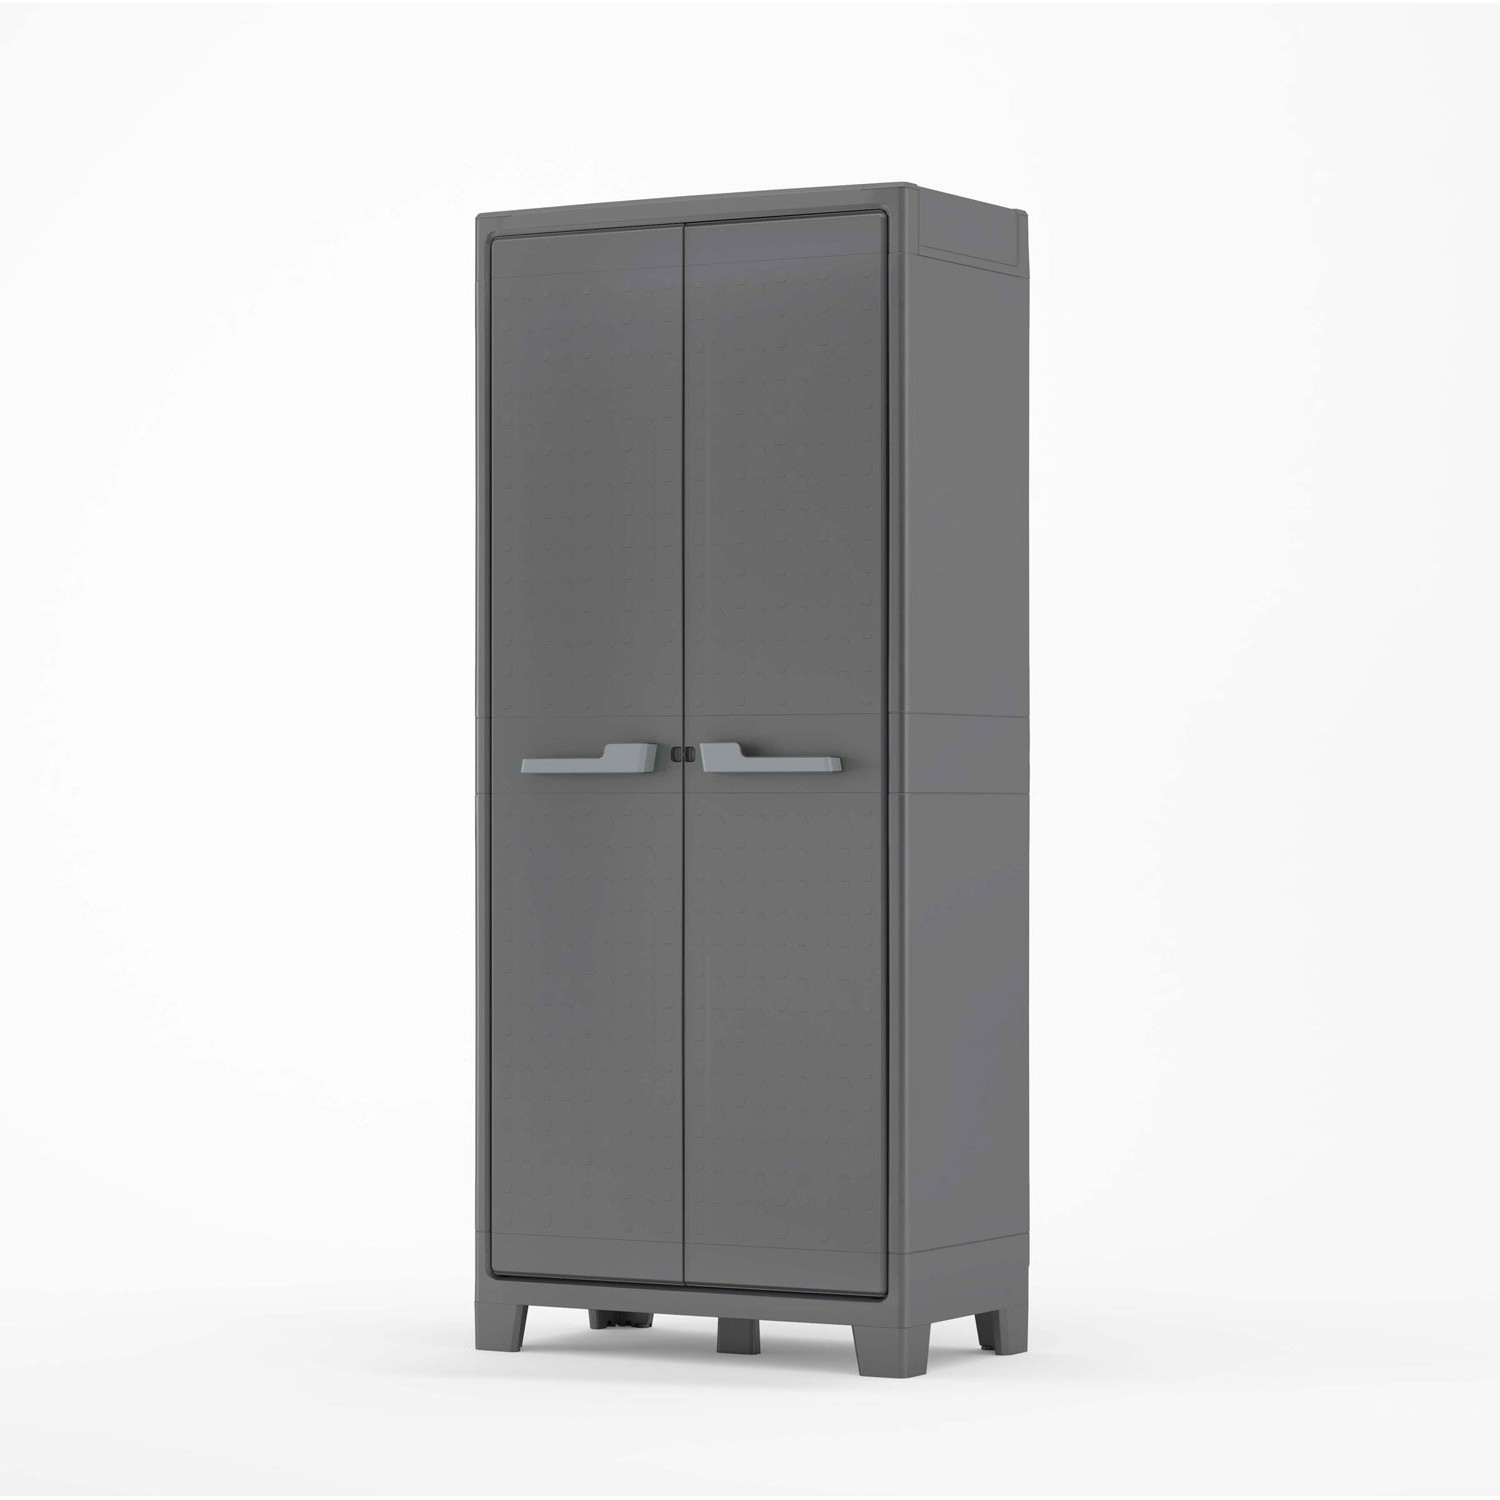 armoire plastique jardin castorama armoire id es de. Black Bedroom Furniture Sets. Home Design Ideas